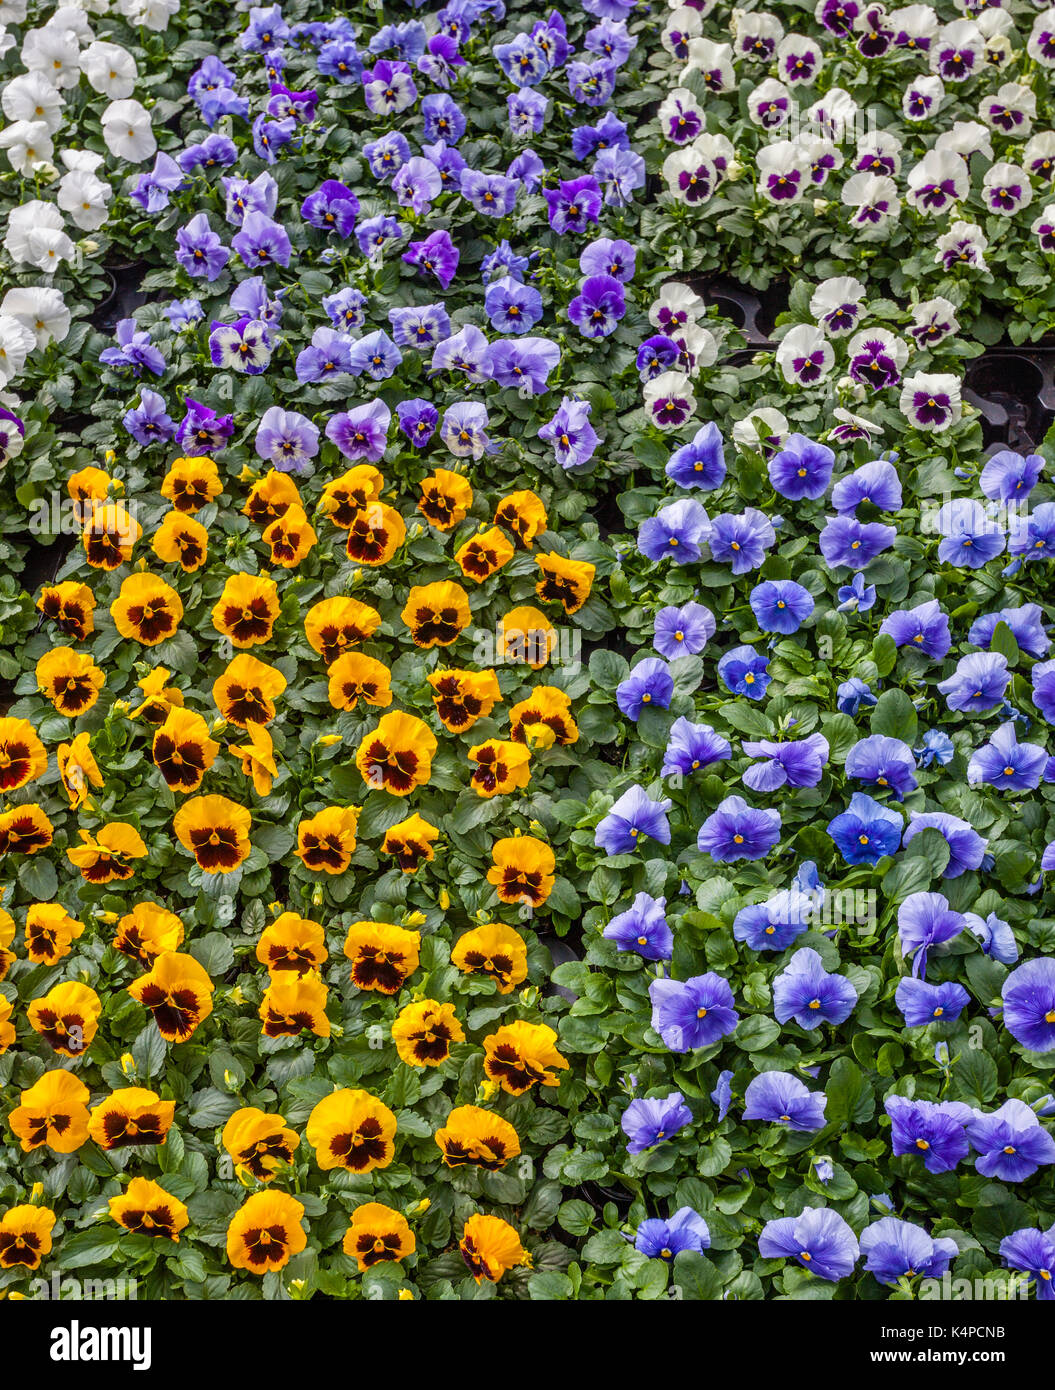 Netherlands, South Holland, Rotterdam, display of garden pansies at the Rotterdam market - Stock Image